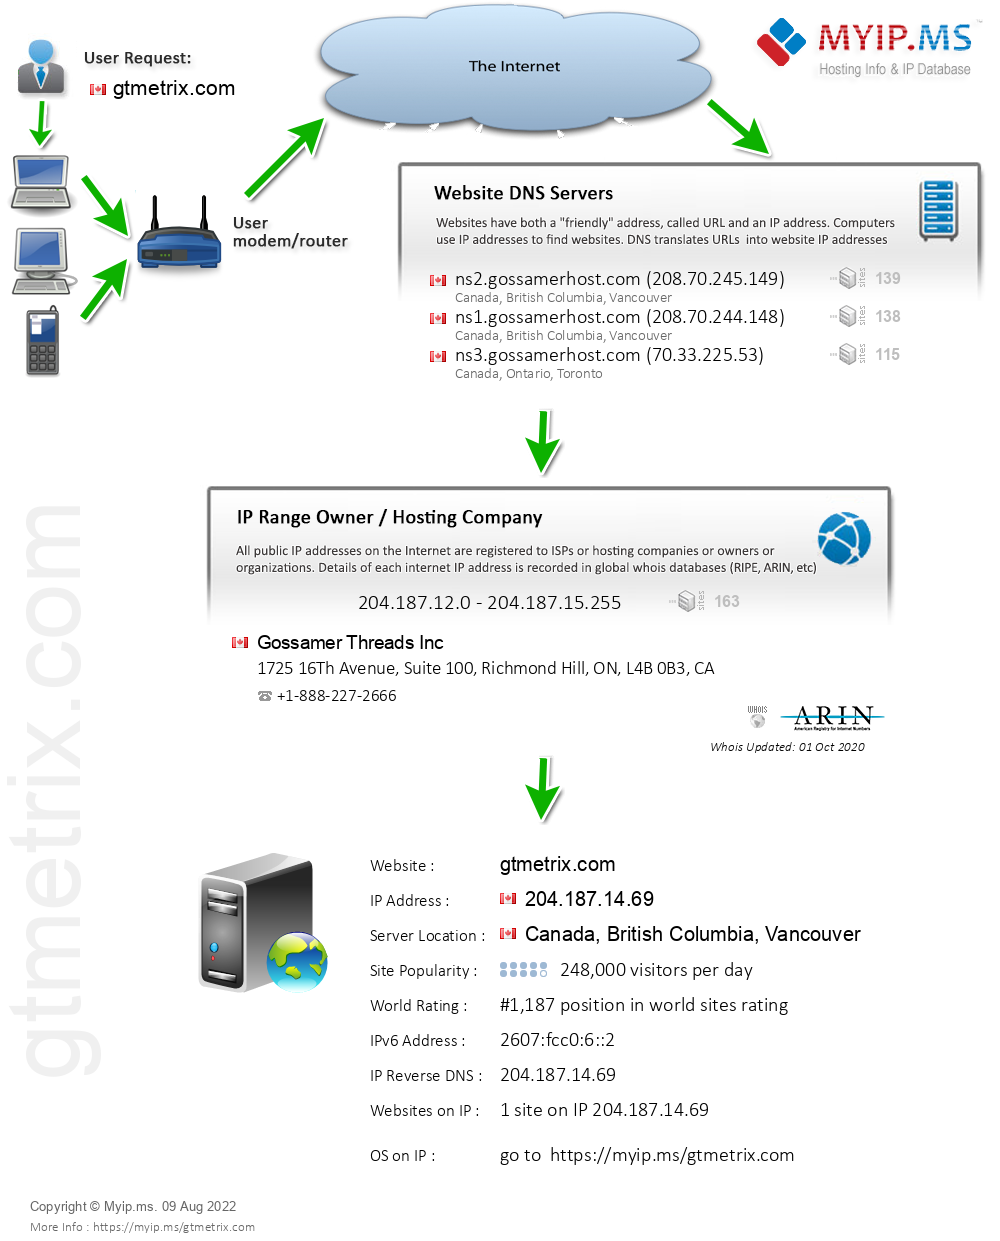 Gtmetrix.com - Website Hosting Visual IP Diagram